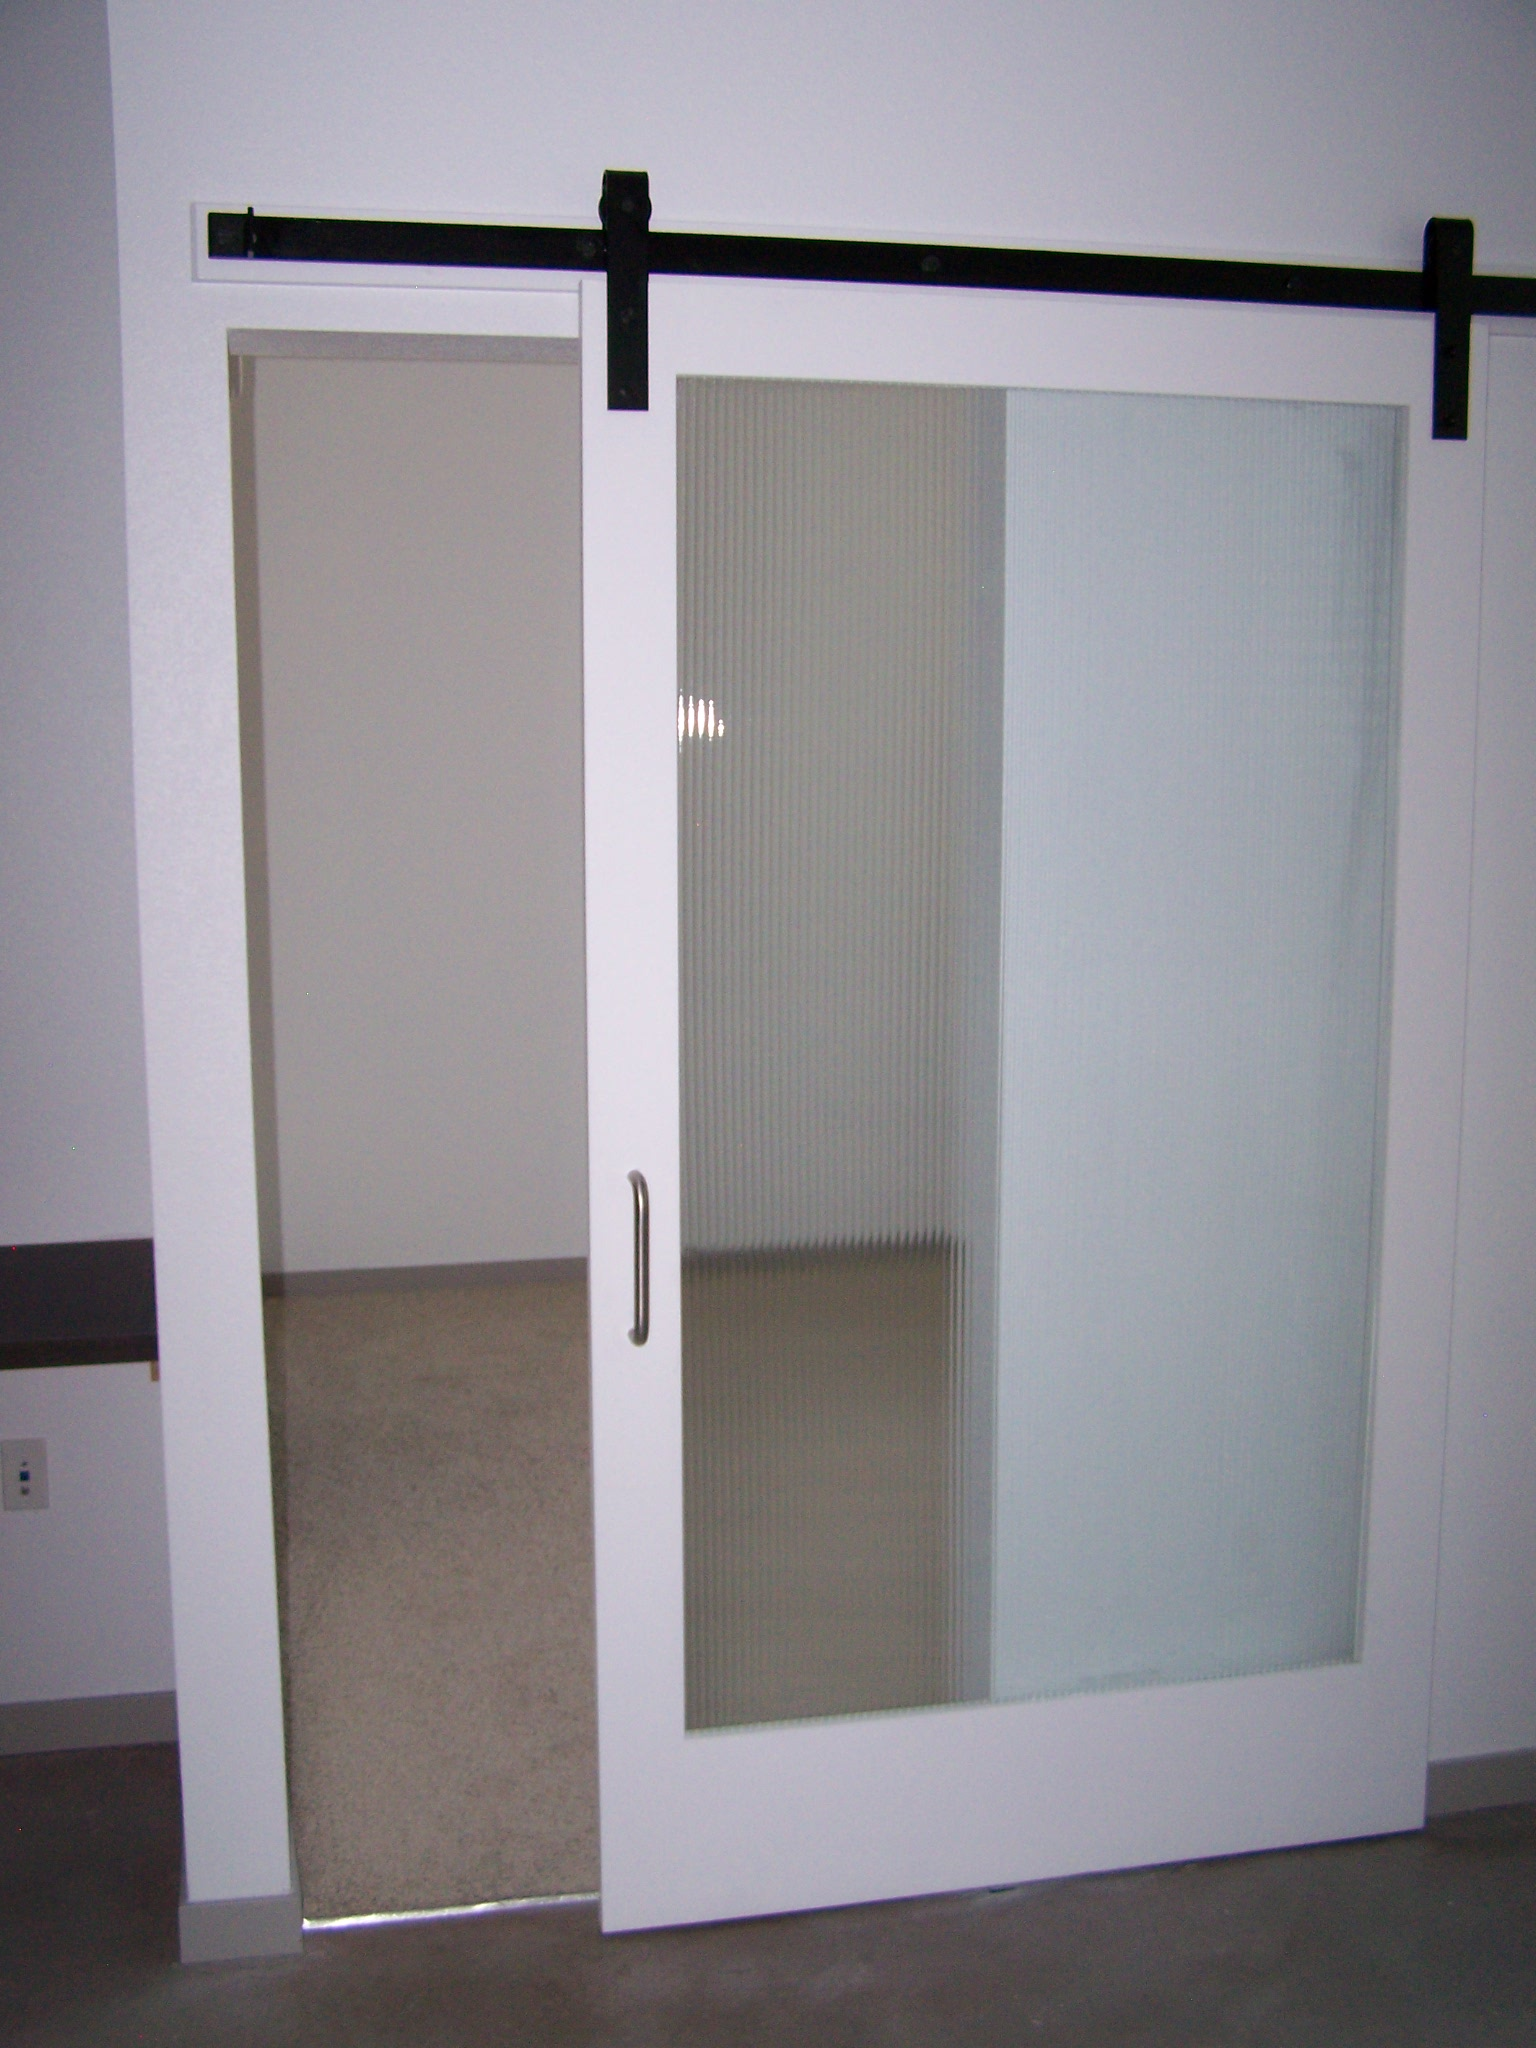 Helpful answers for necessary elements for sliding door har for Barn door screen door